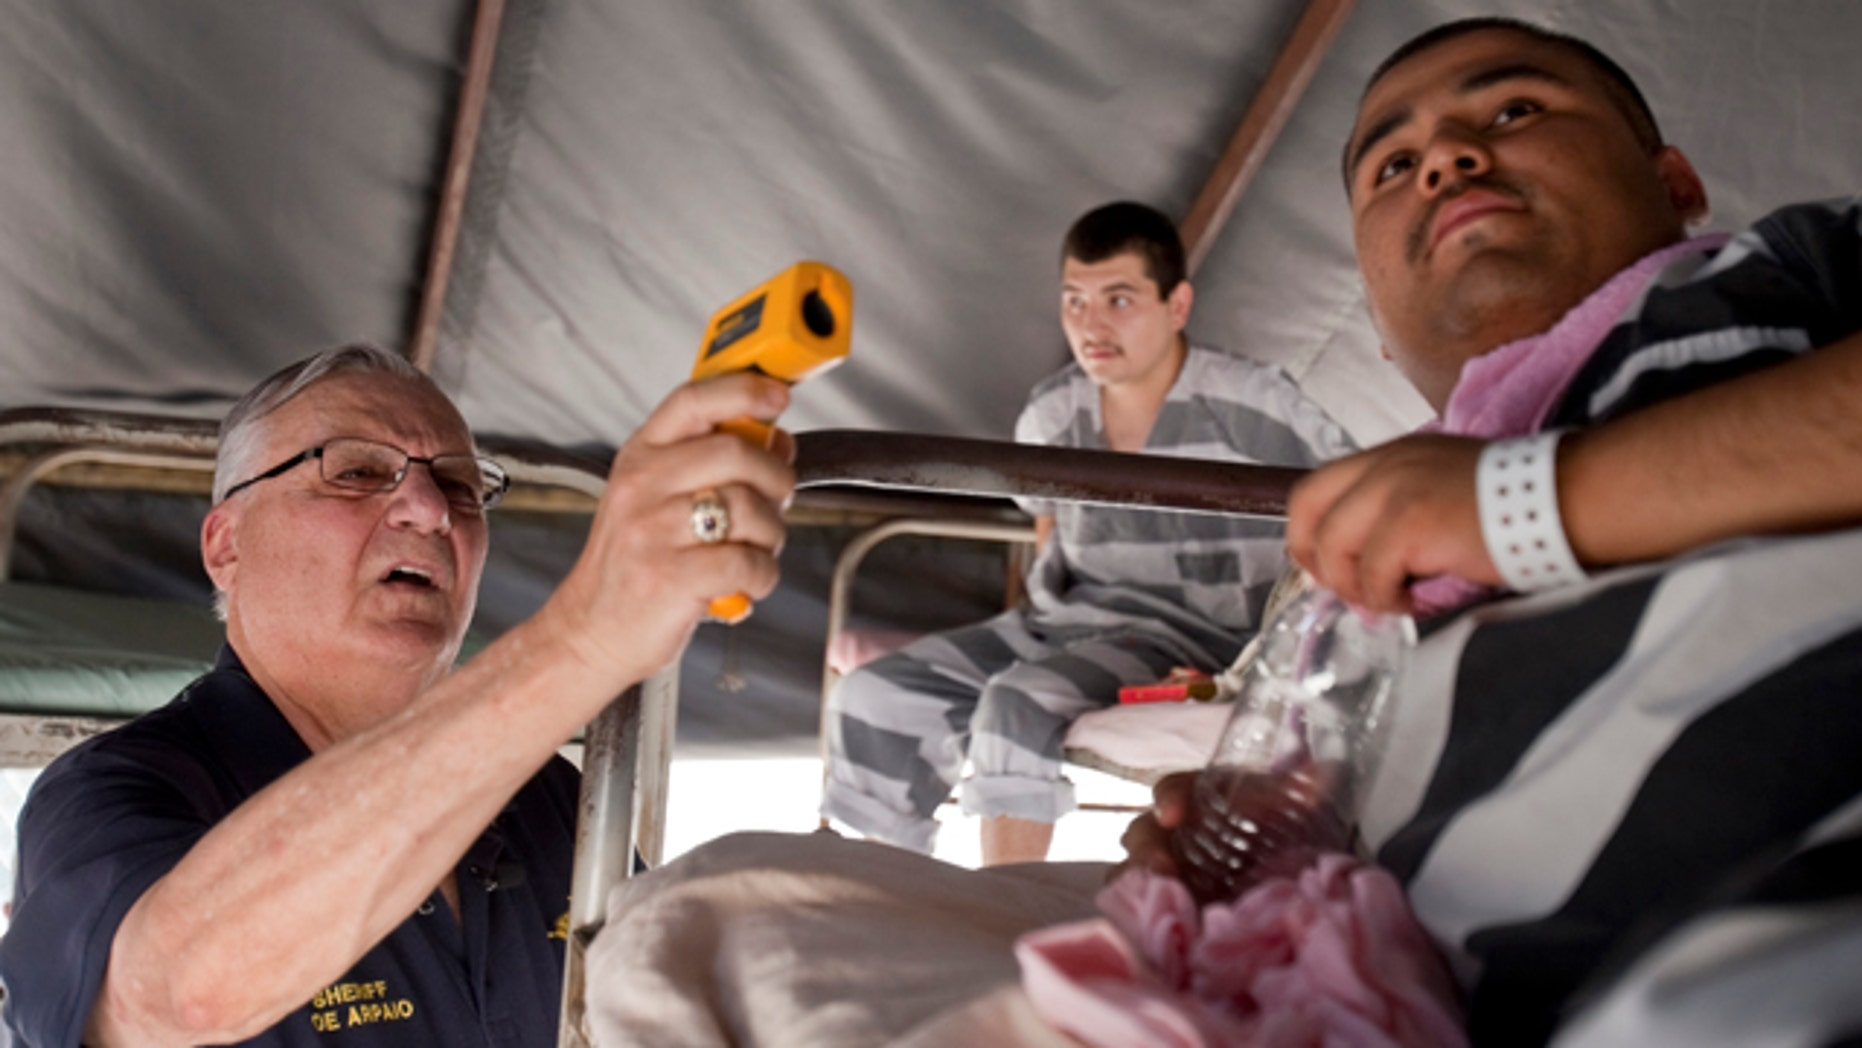 Phoenix hit a record high of 118 degres today. Maricopa County Sheriff Joe Arpaio  inspects the heat inside the tents while Baron Hernandez  lies on a bed at the Tent City jail on July 2, 2011 in Phoenix, Arizona.    (AP Photo/The Arizona Republic, Patrick Breen)